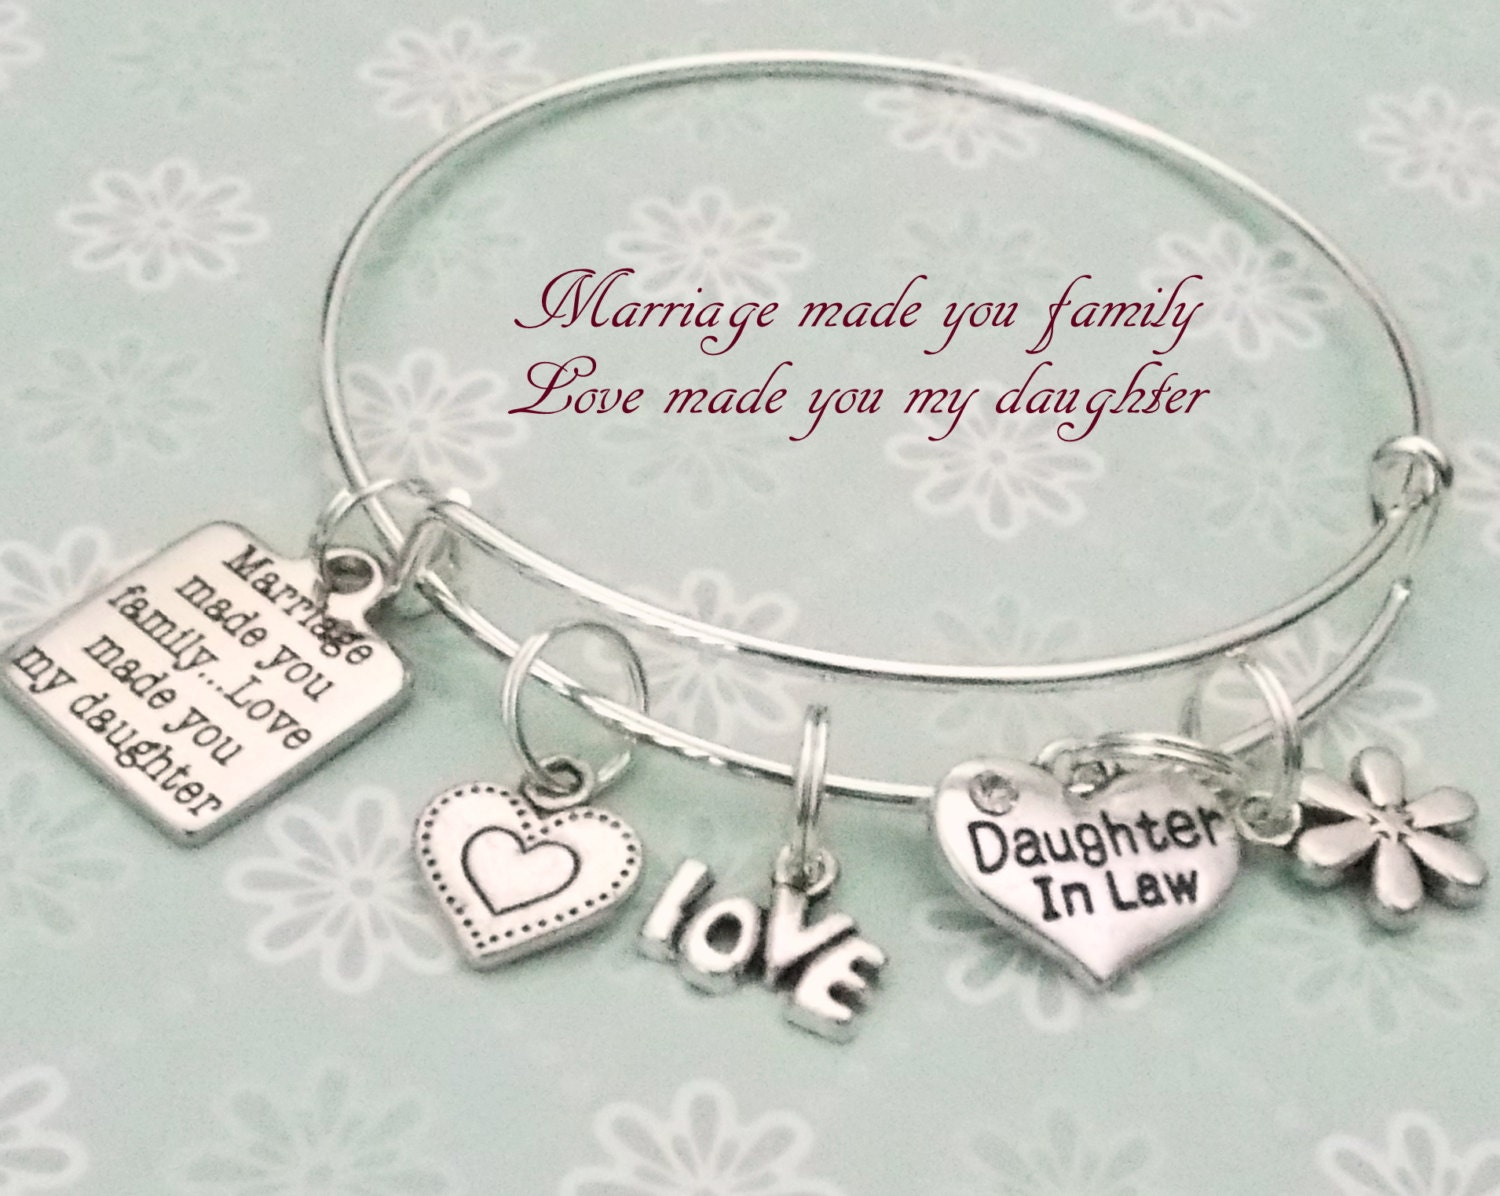 Daughter Son In Law Personalized Poem Christmas Gift: Daughter In Law Gift Gift For Daughter In Law Mother To